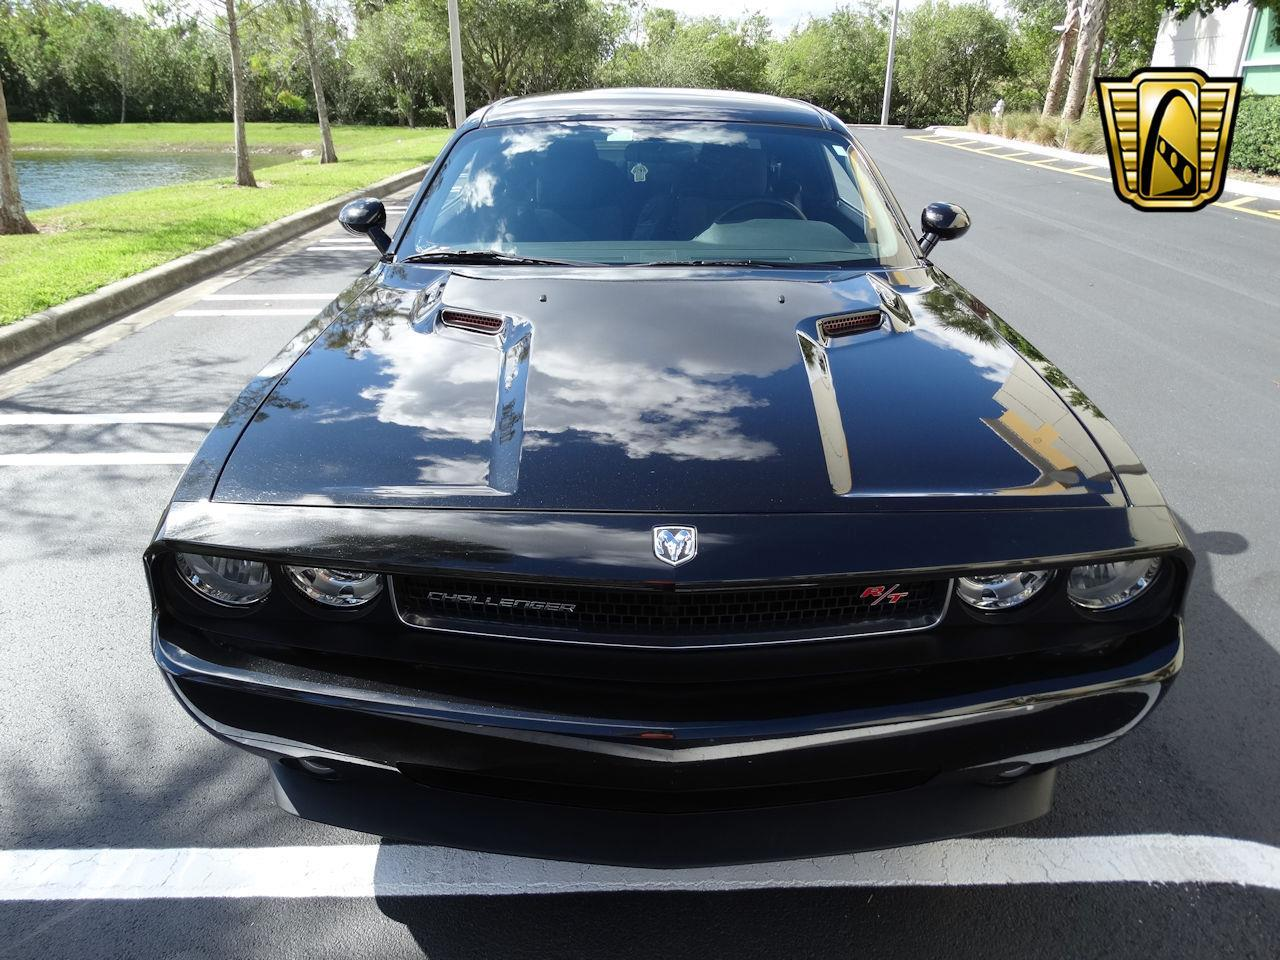 Large Picture of 2009 Dodge Challenger - $19,995.00 Offered by Gateway Classic Cars - Fort Lauderdale - MCFB